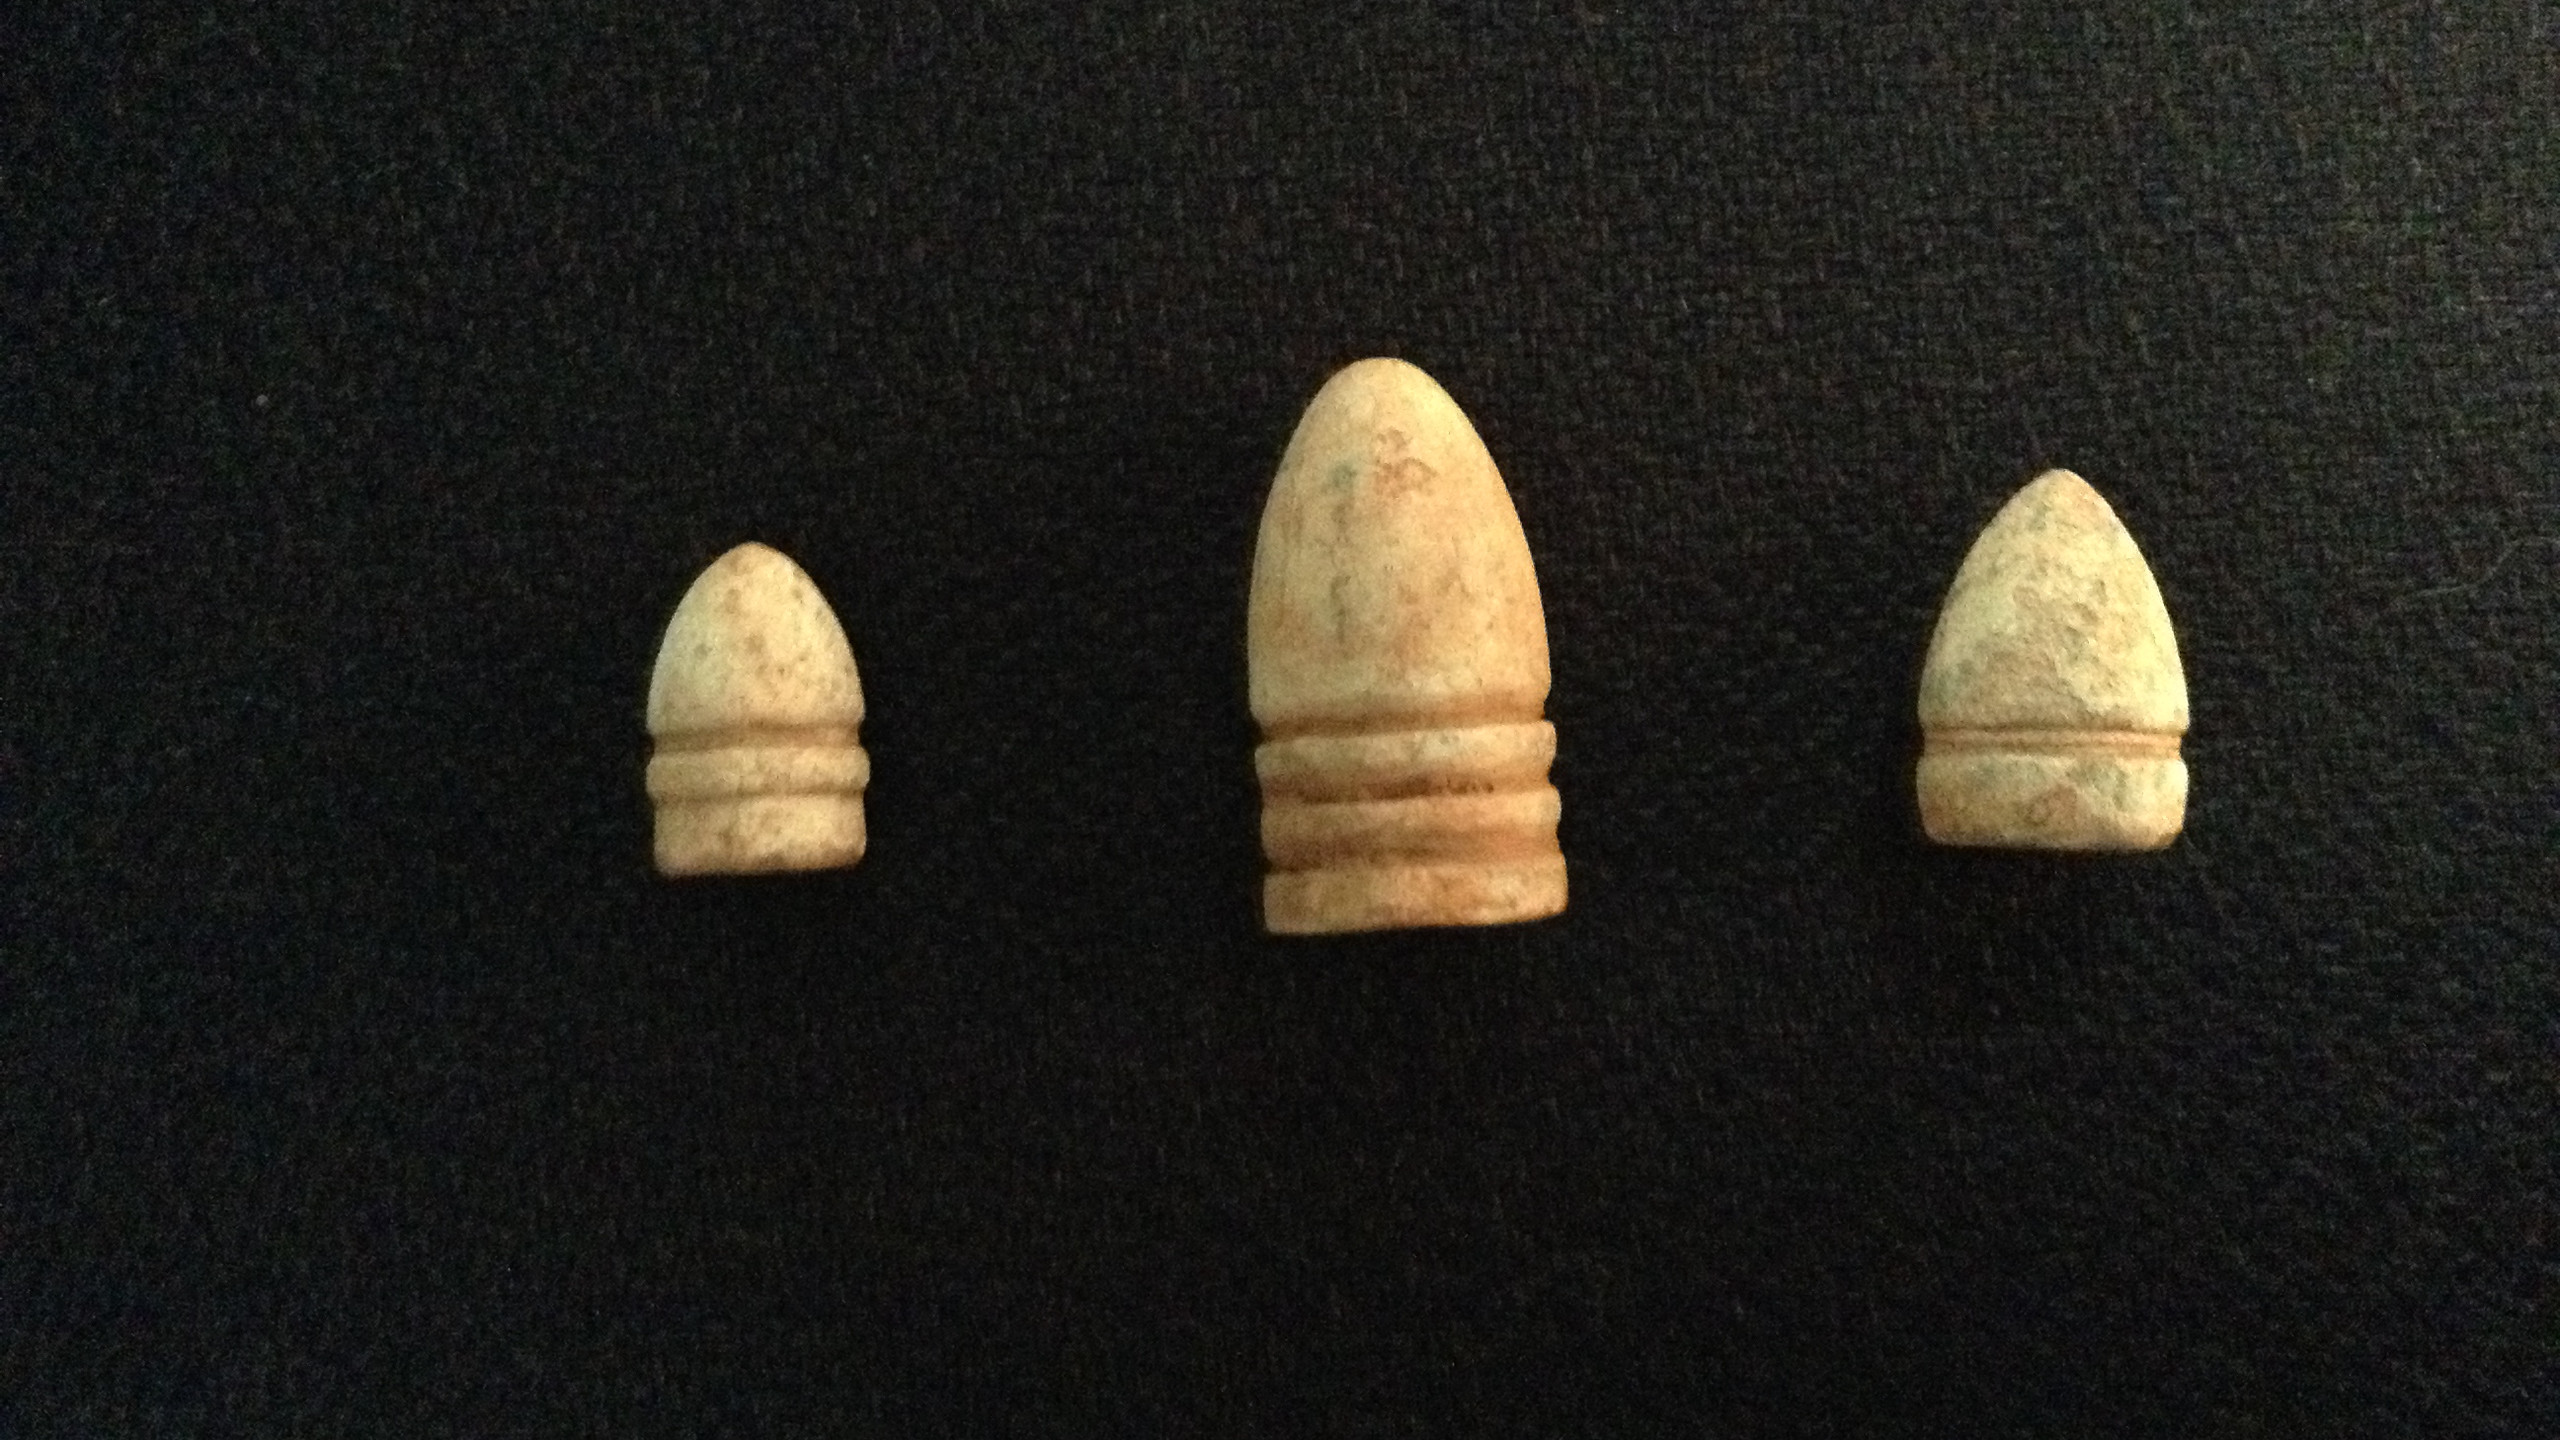 A variety of bullets